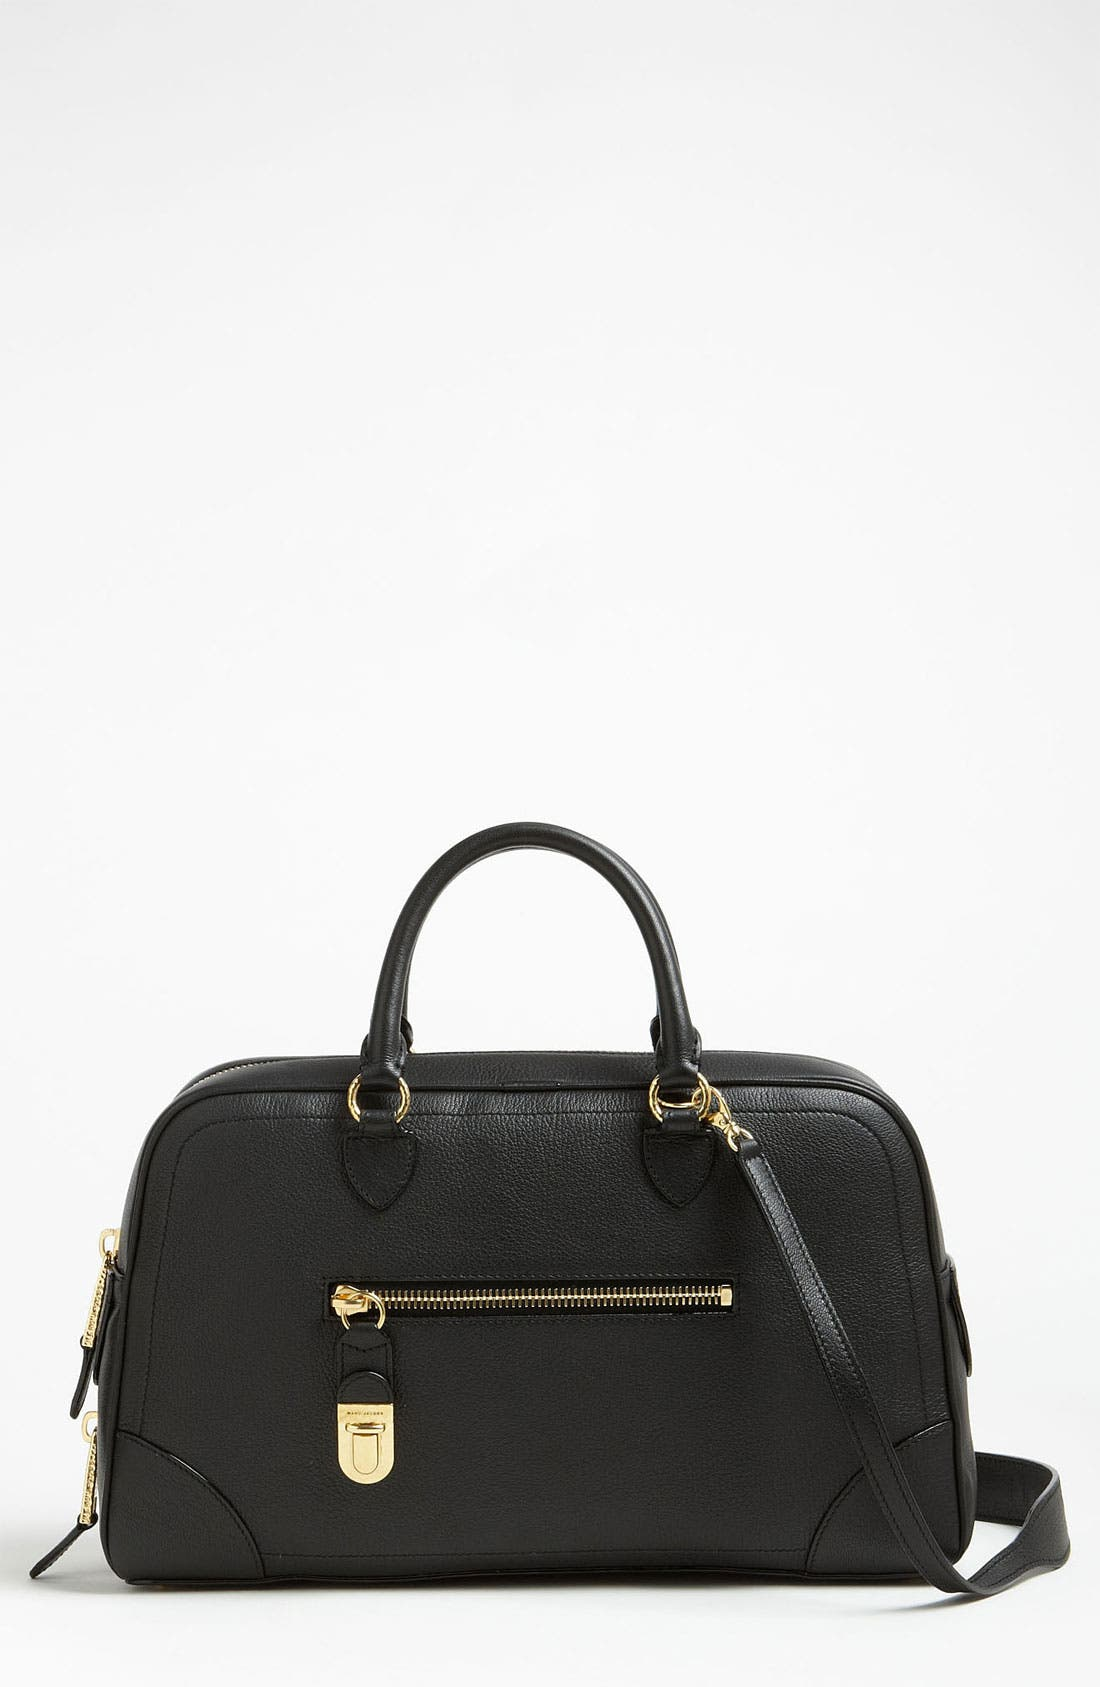 Alternate Image 1 Selected - MARC JACOBS 'Venetia' Leather Satchel